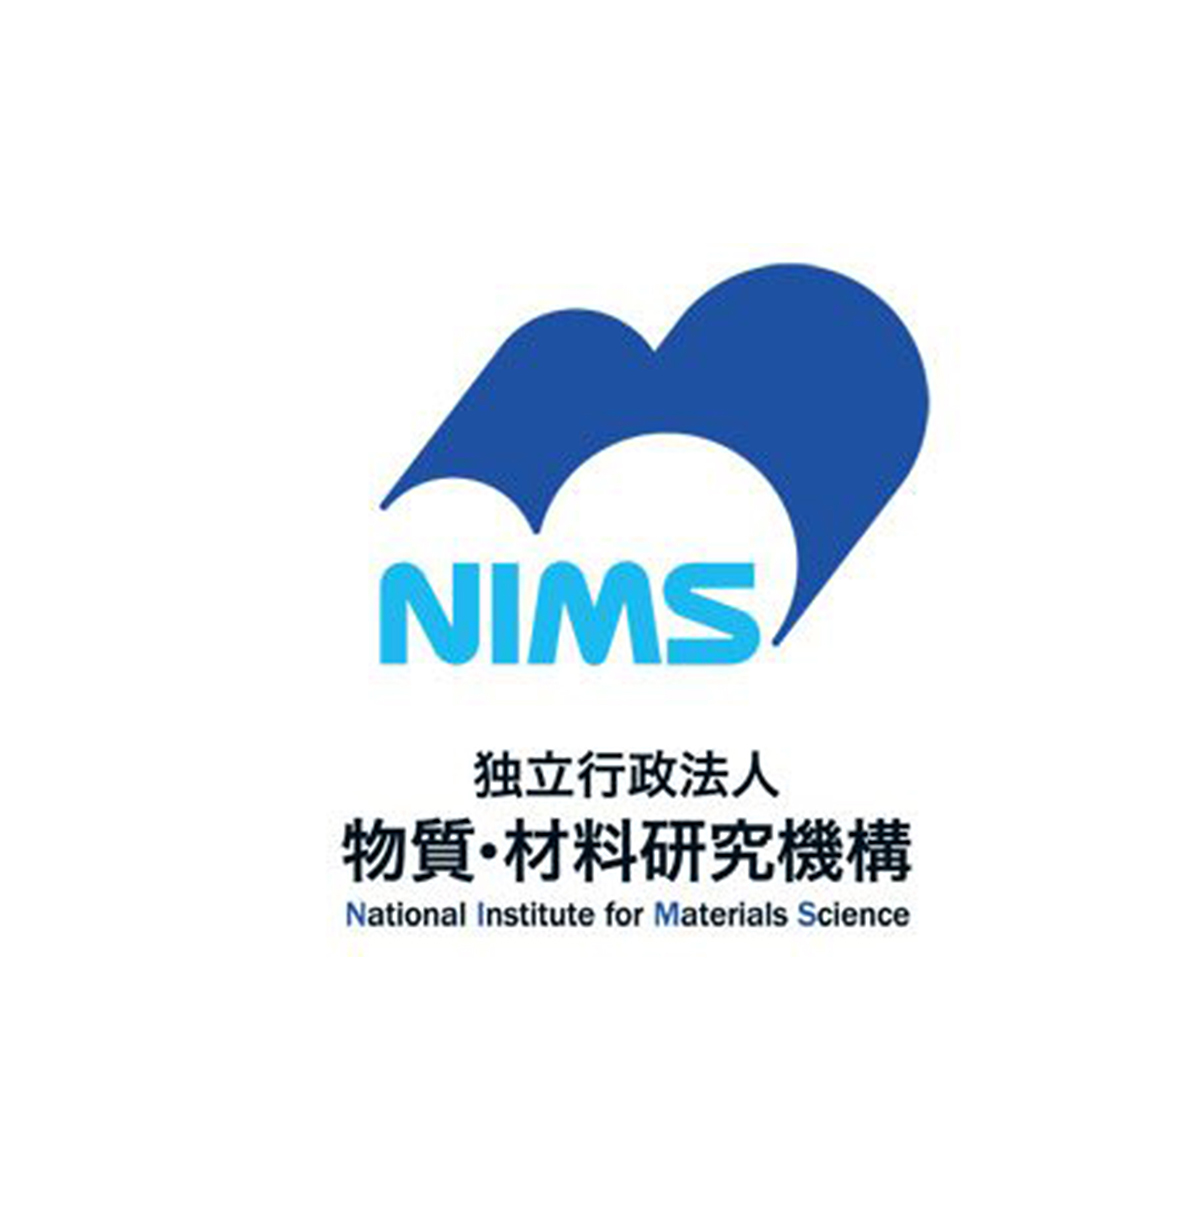 National Institute for Materials Science